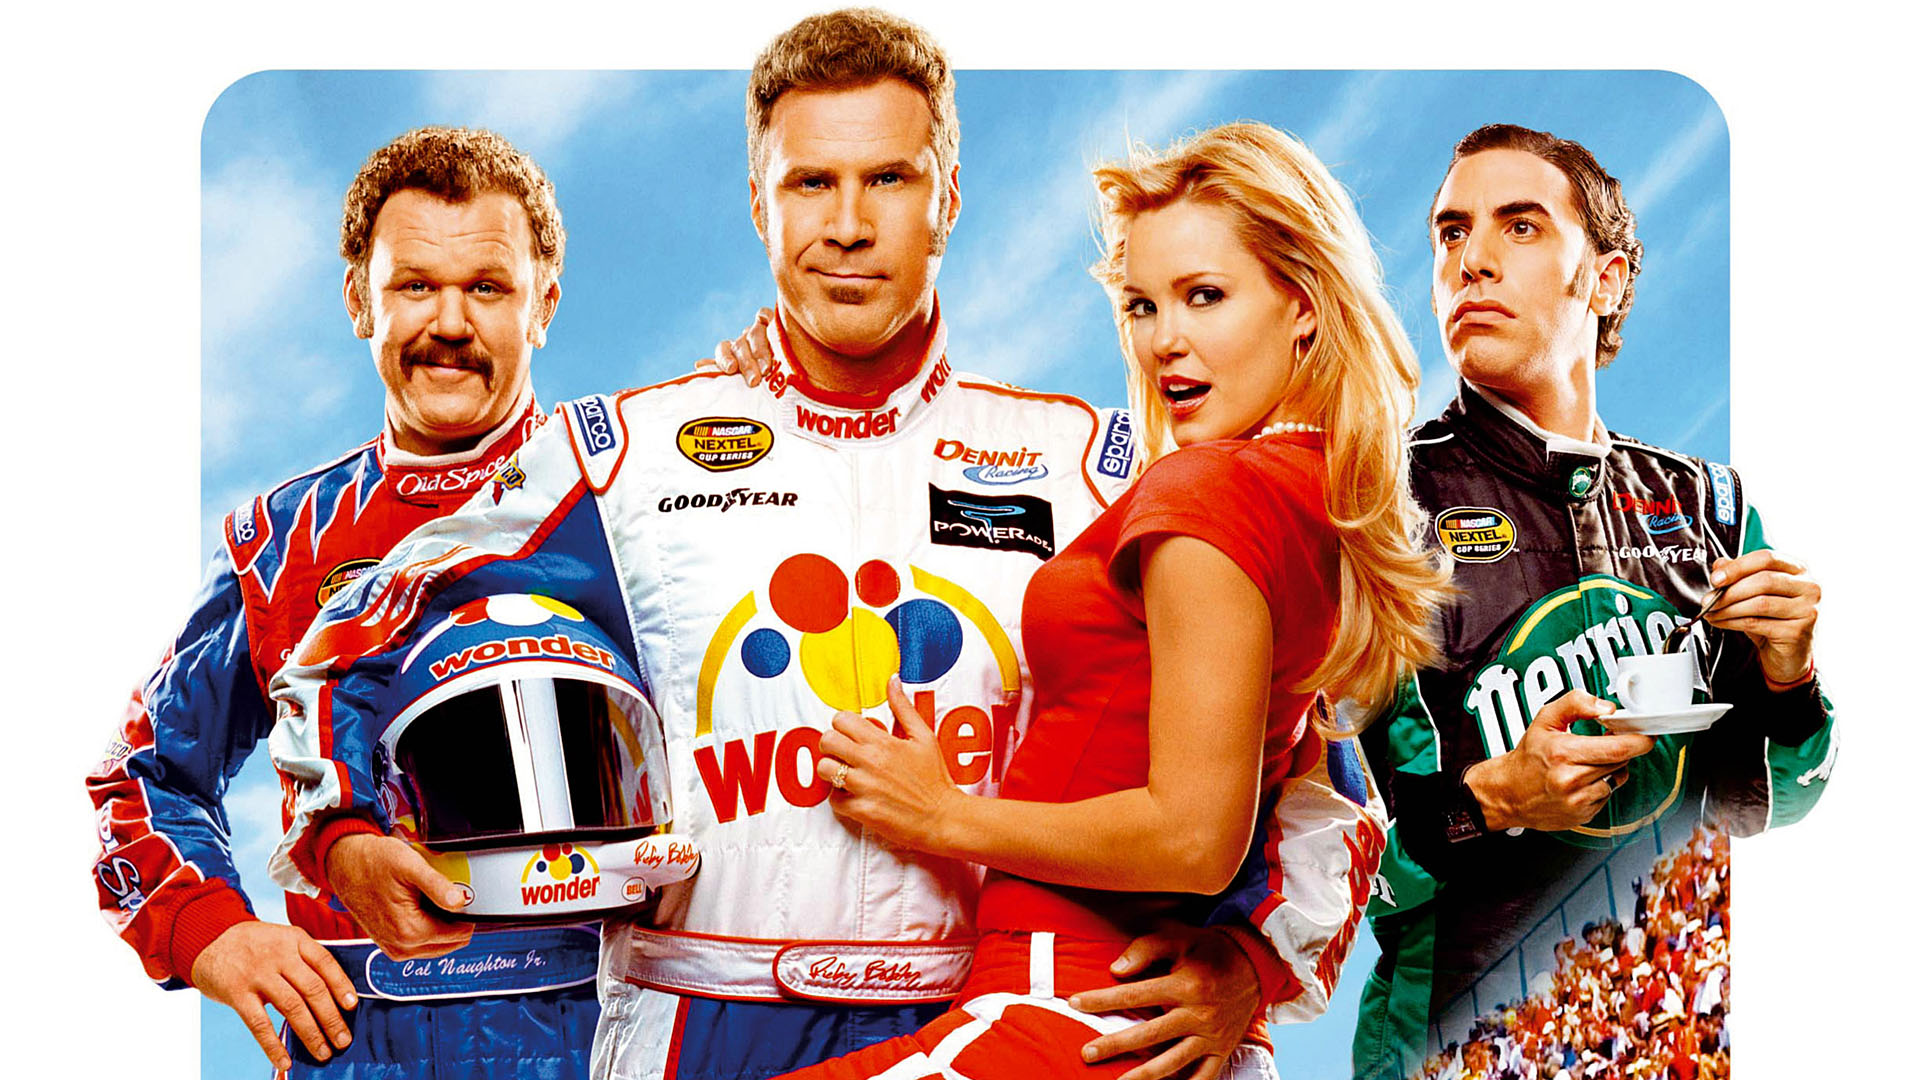 talladega nights the ballad of ricky bobby hd wallpaper background image 1920x1080 id. Black Bedroom Furniture Sets. Home Design Ideas